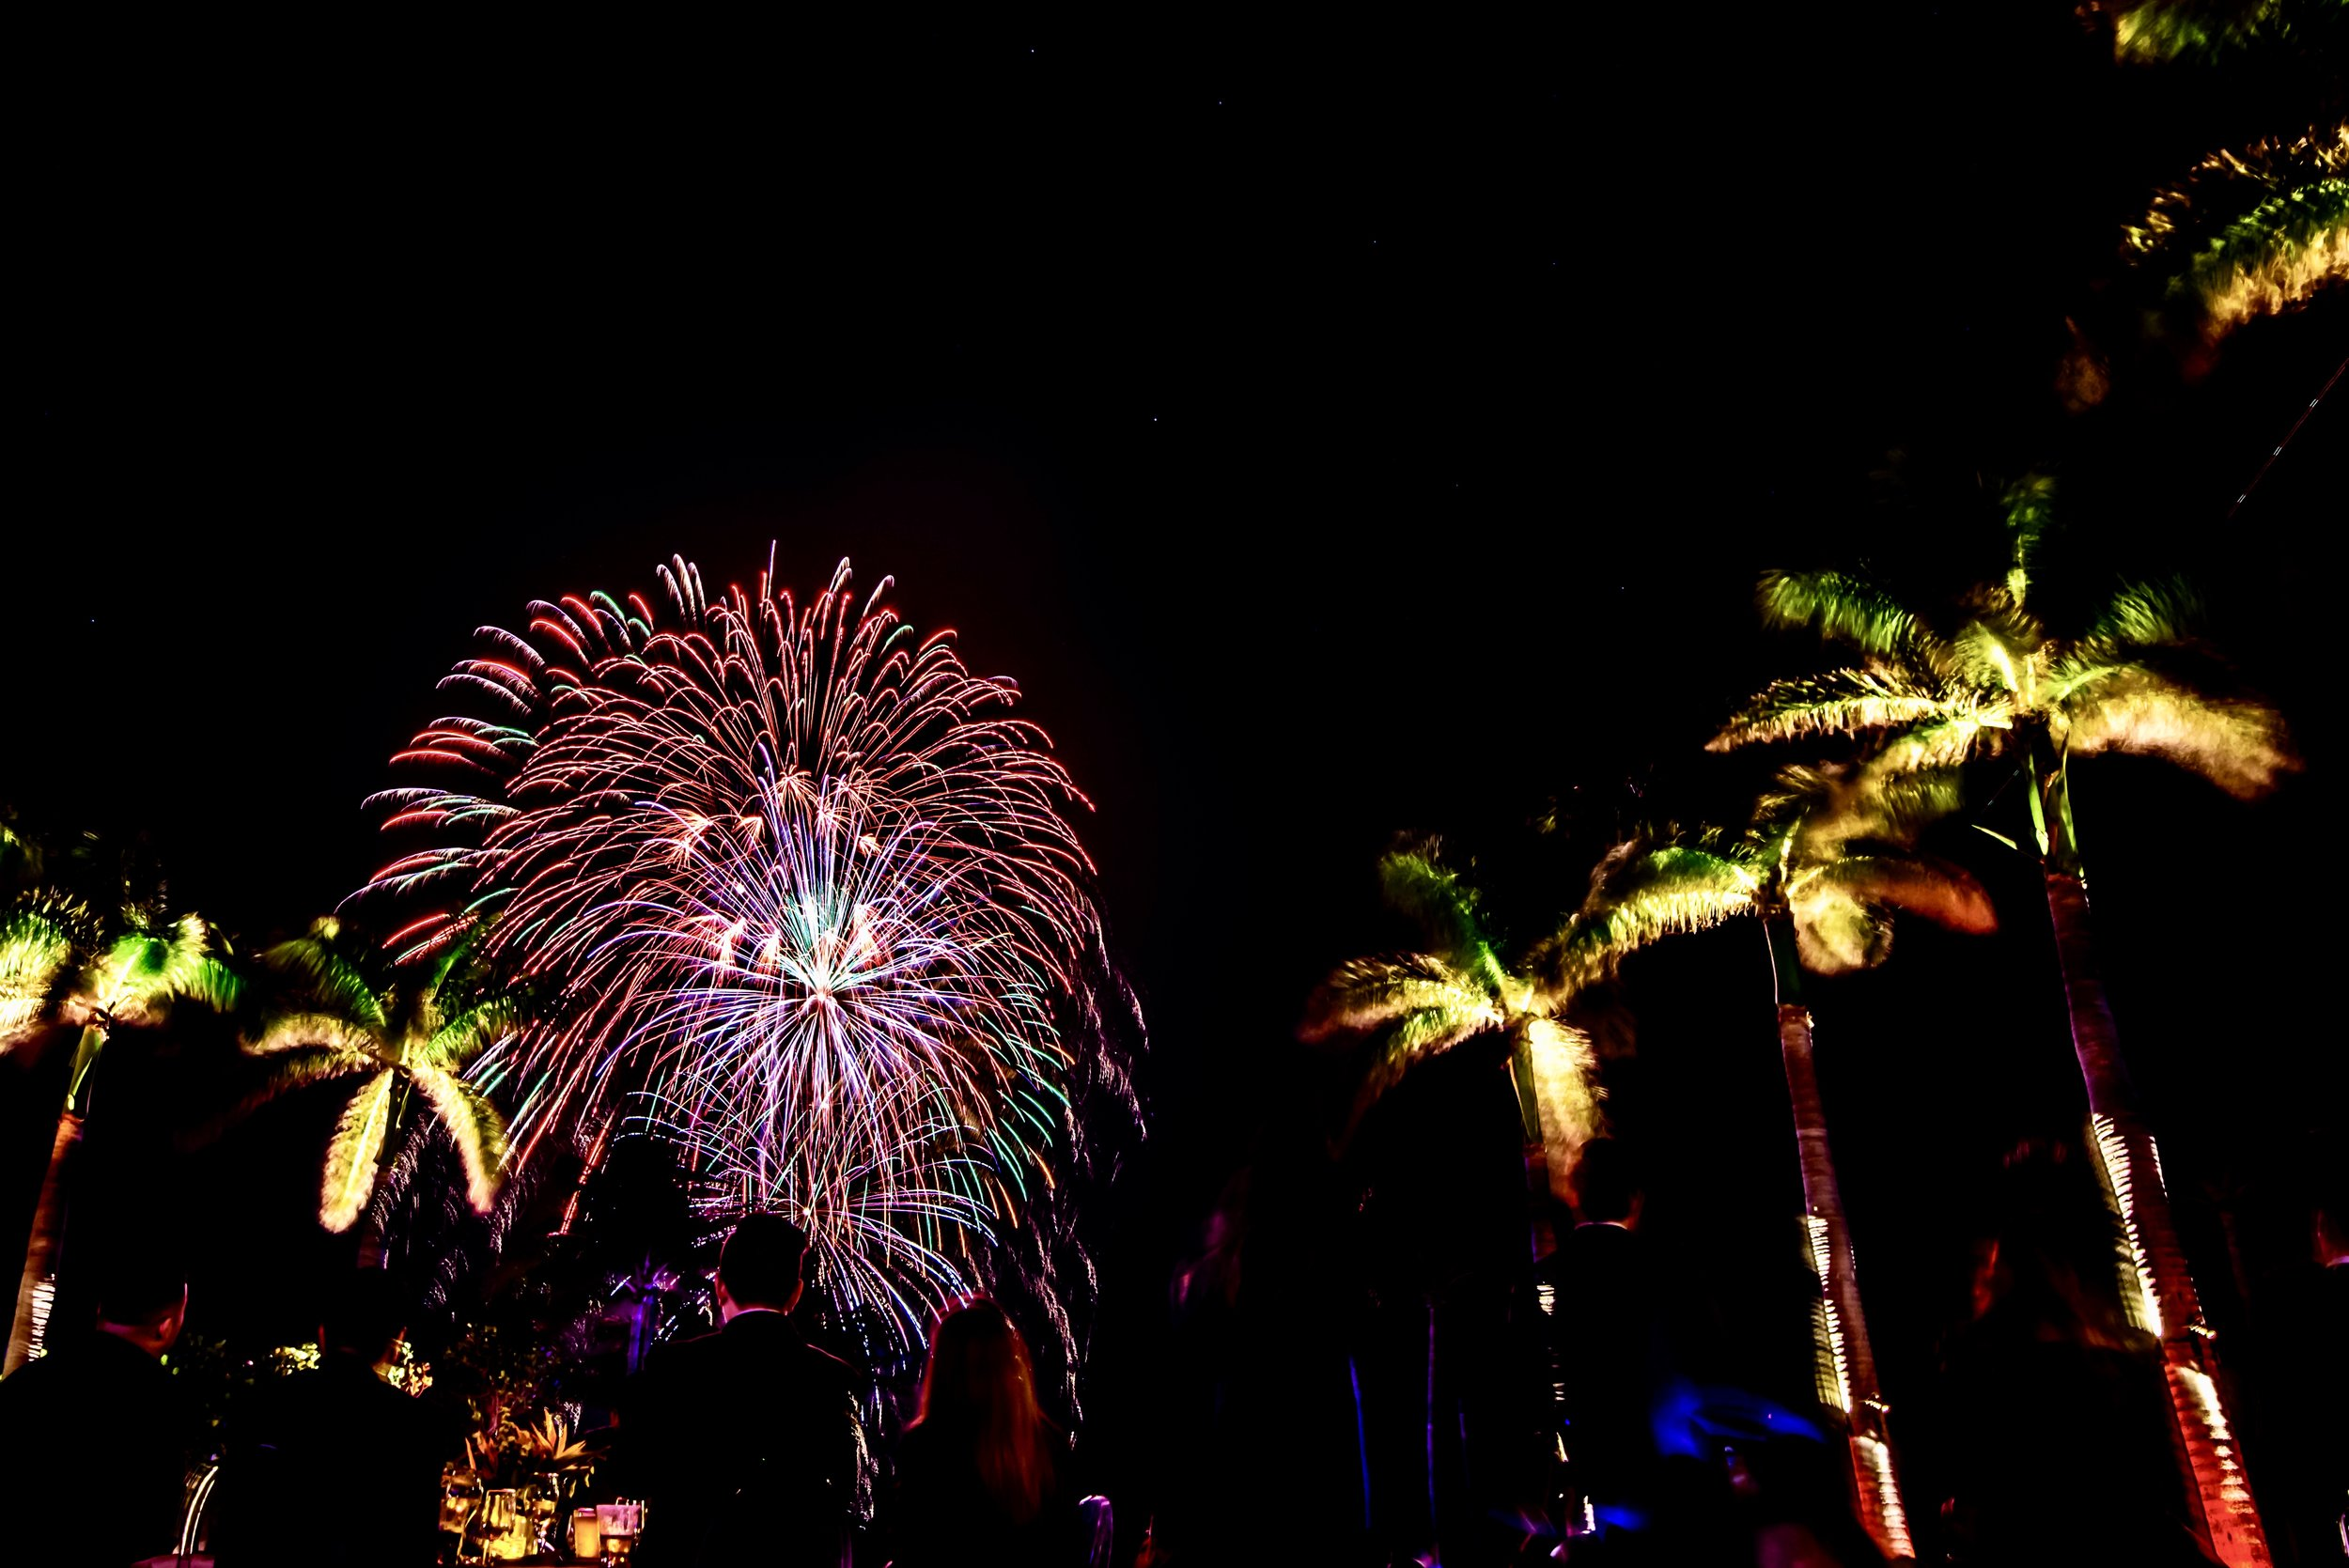 Fireworks over Key Biscayne at the Soft Gold Gala produced by Exhilarate Events, 3/25/18.